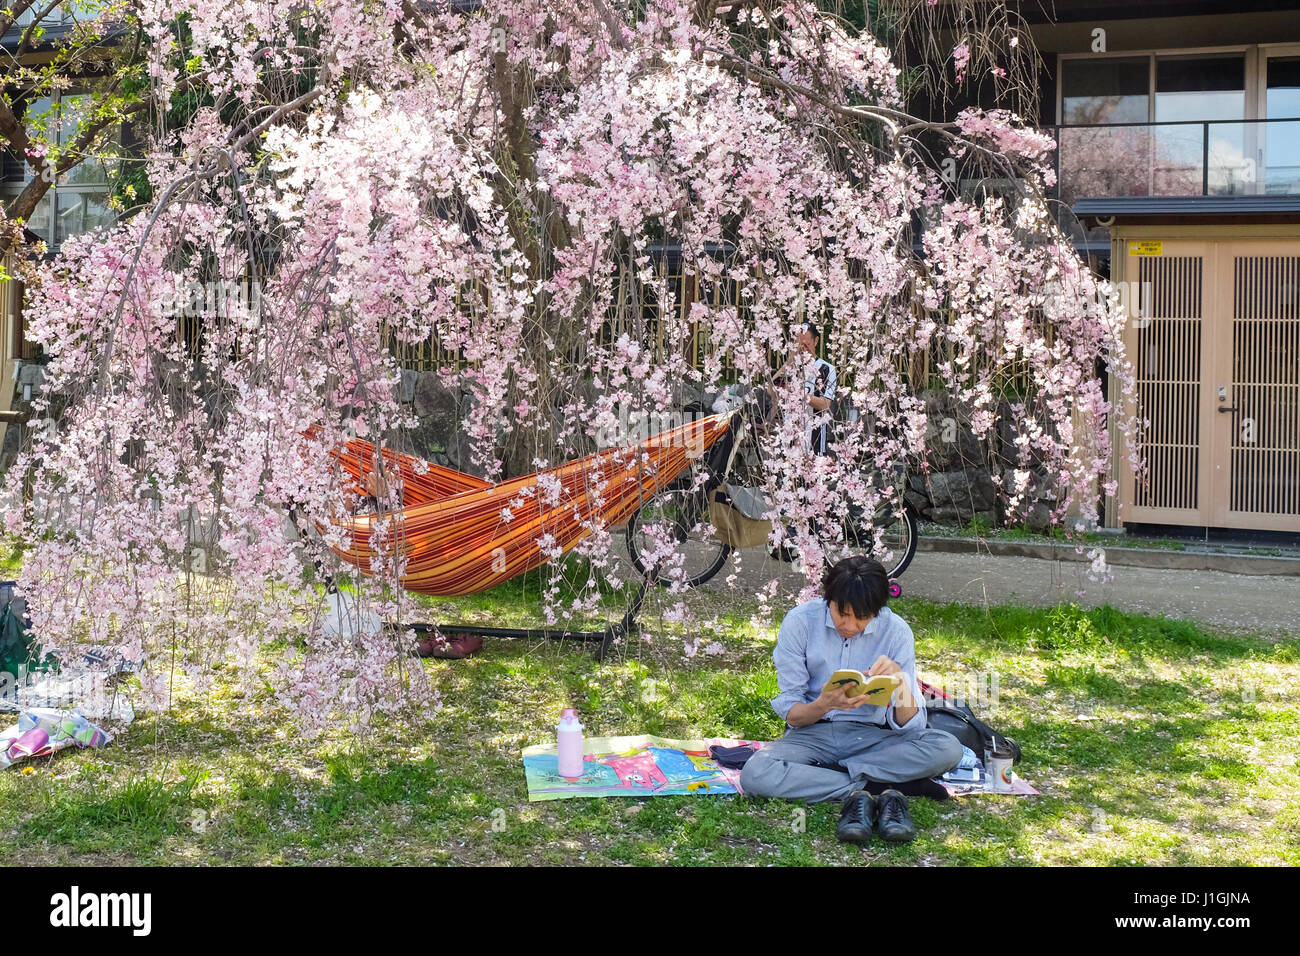 A man relaxes under a cherry blossom tree in Kyoto, Japan, during the 'sakura' season in 2017. - Stock Image